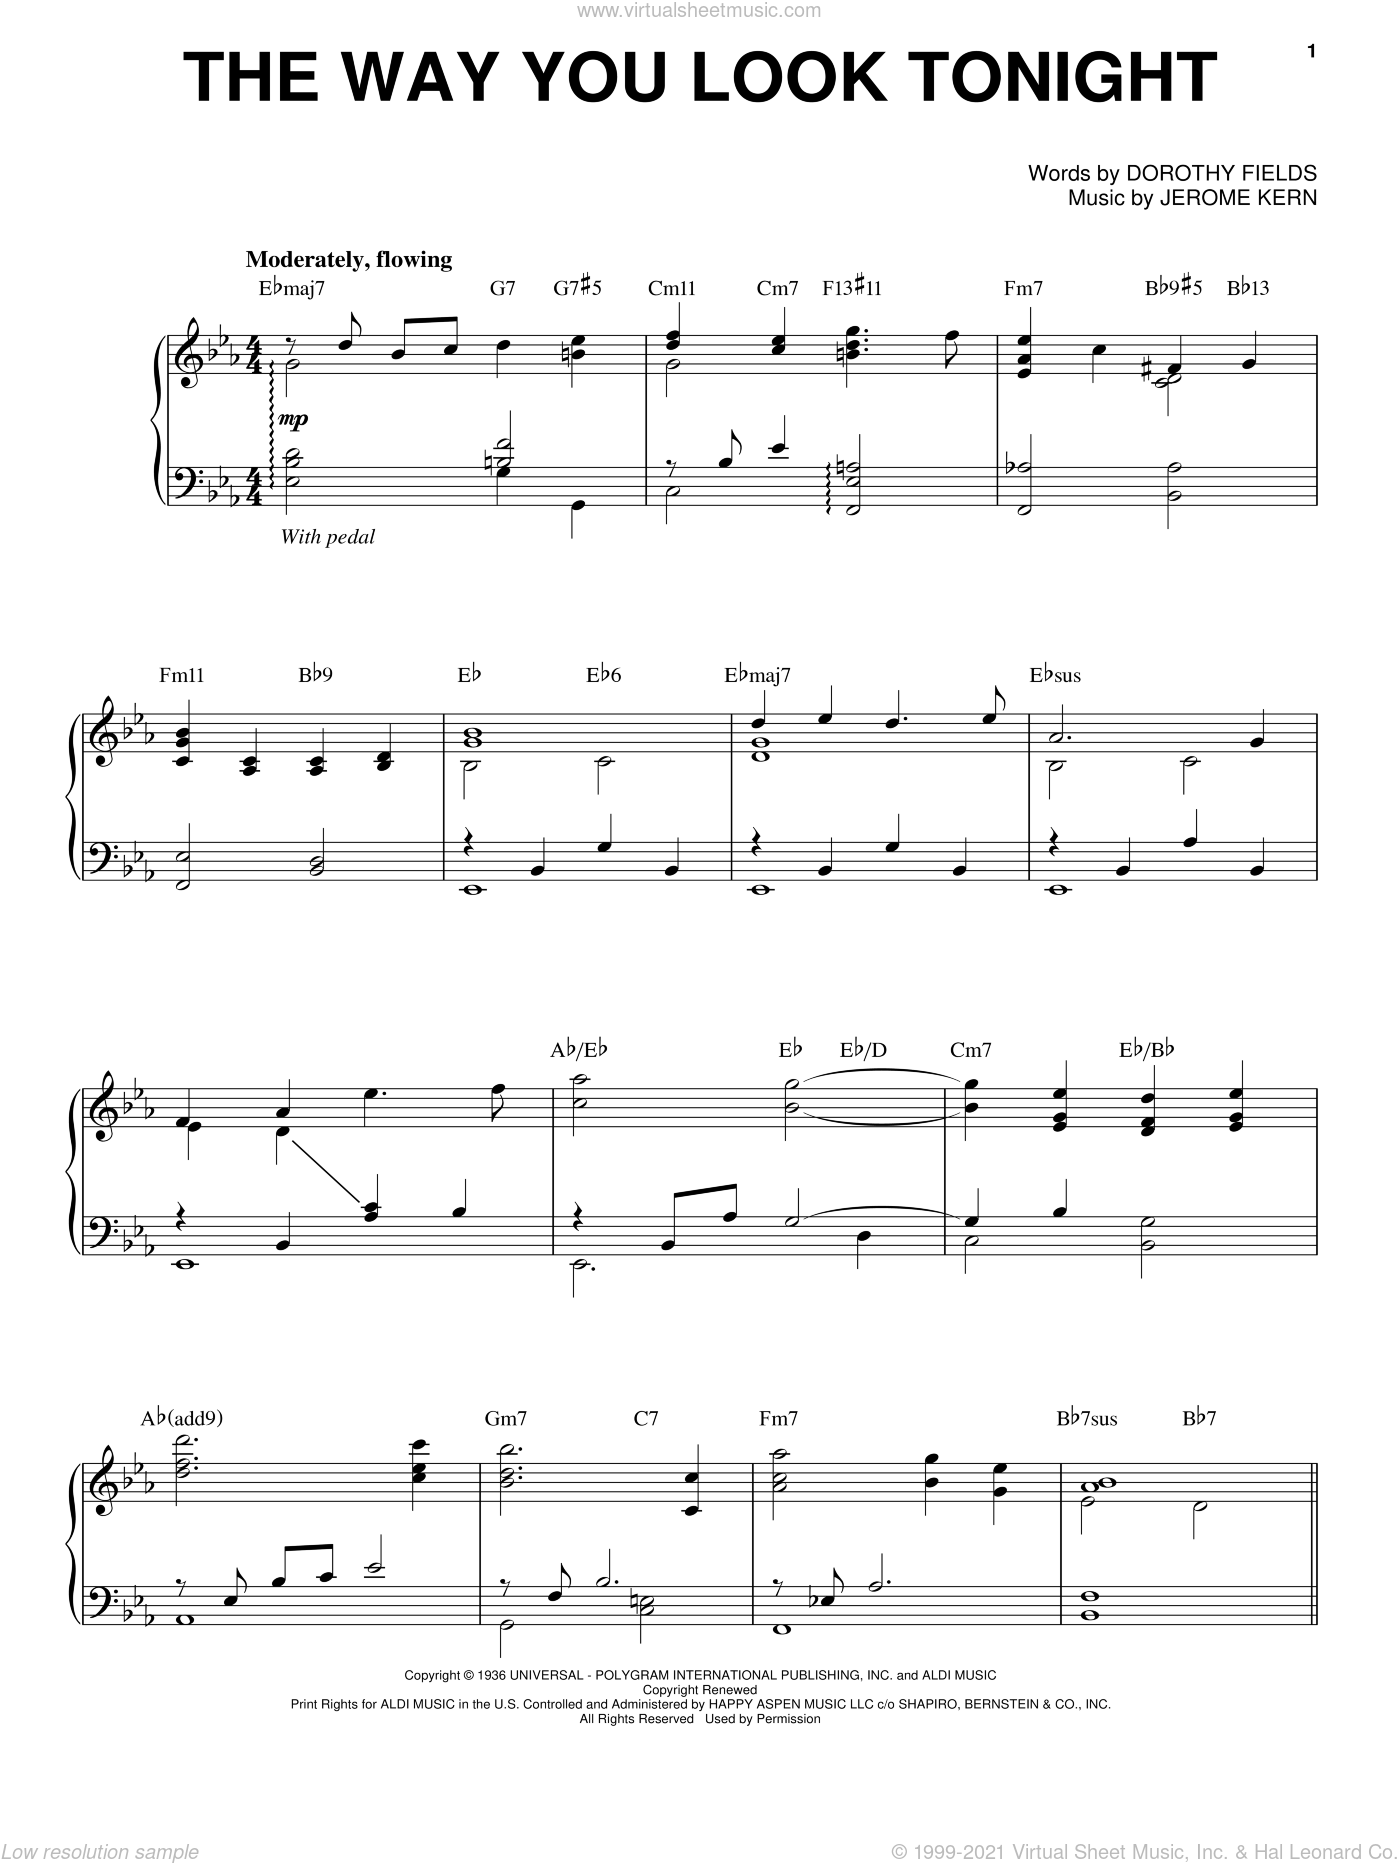 The Way You Look Tonight sheet music for voice and piano by Dorothy Fields